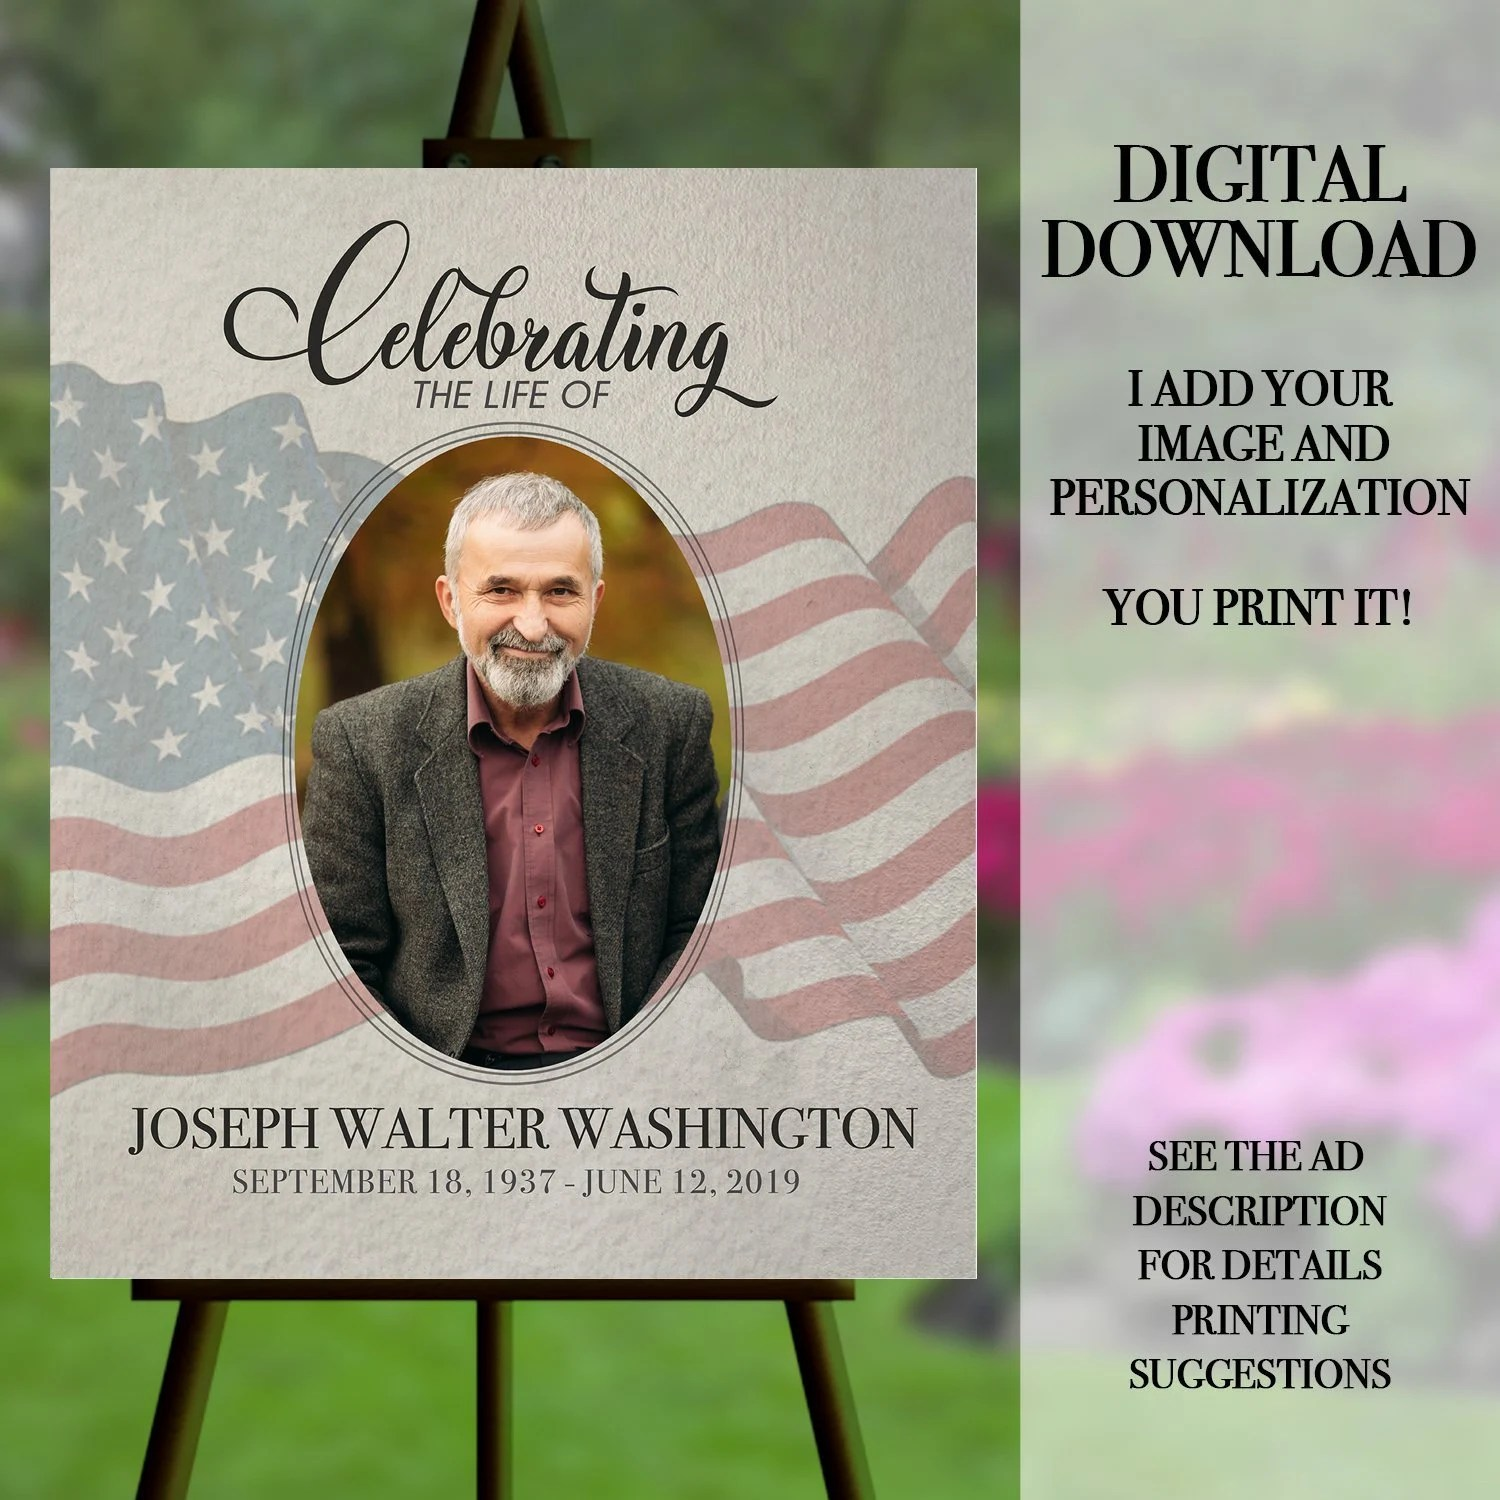 funeral welcome sign celebration of life poster funeral memorial memorial service funeral poster funeral portrait memorial with flag